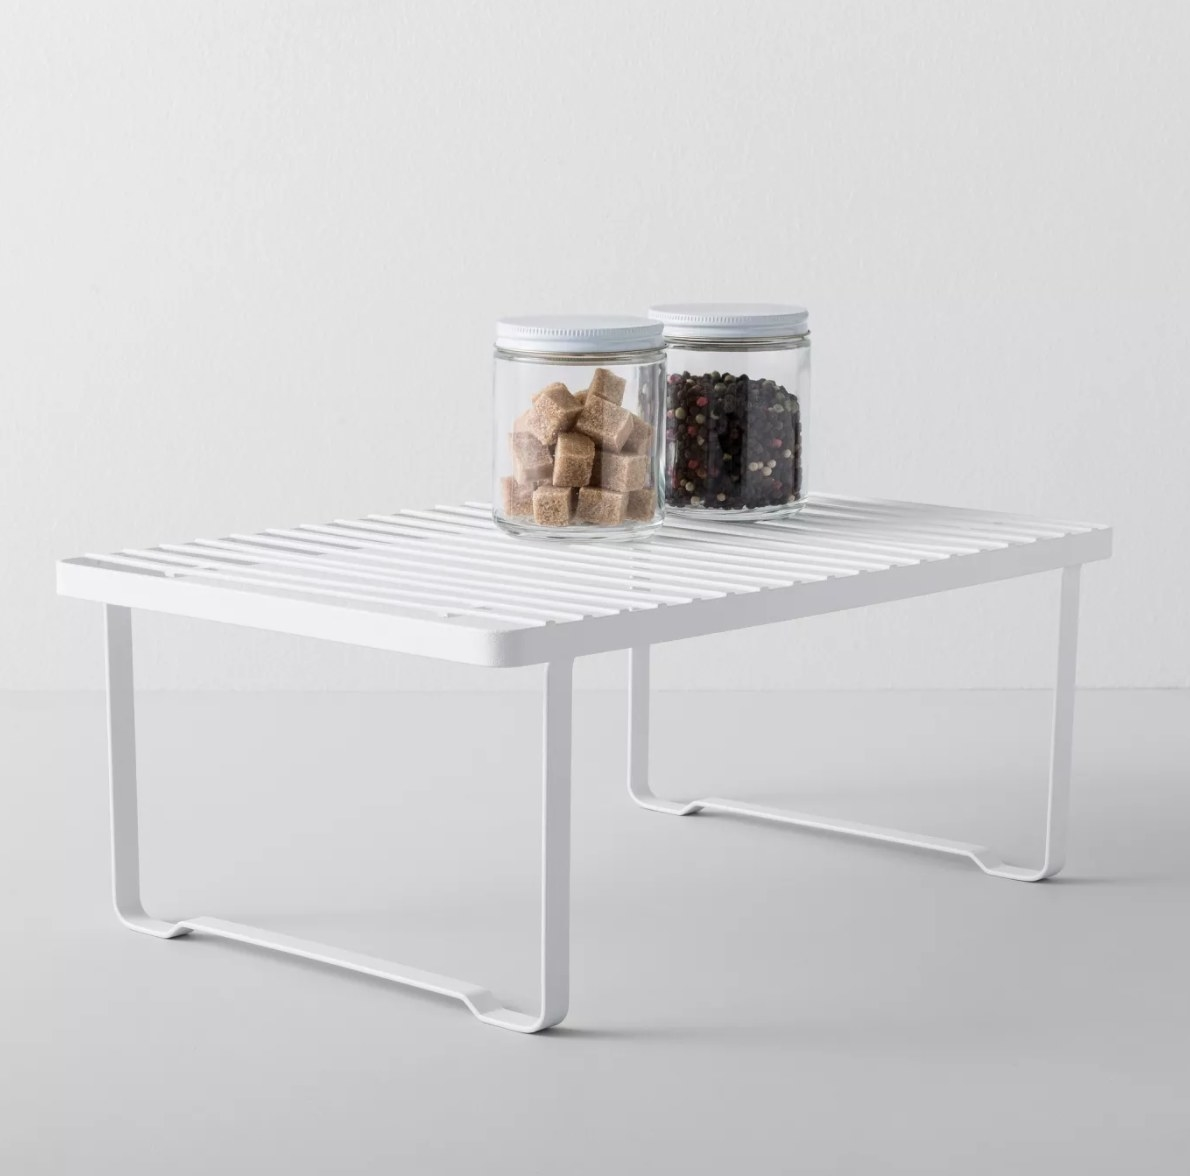 White riser shelf with two jars on top of it